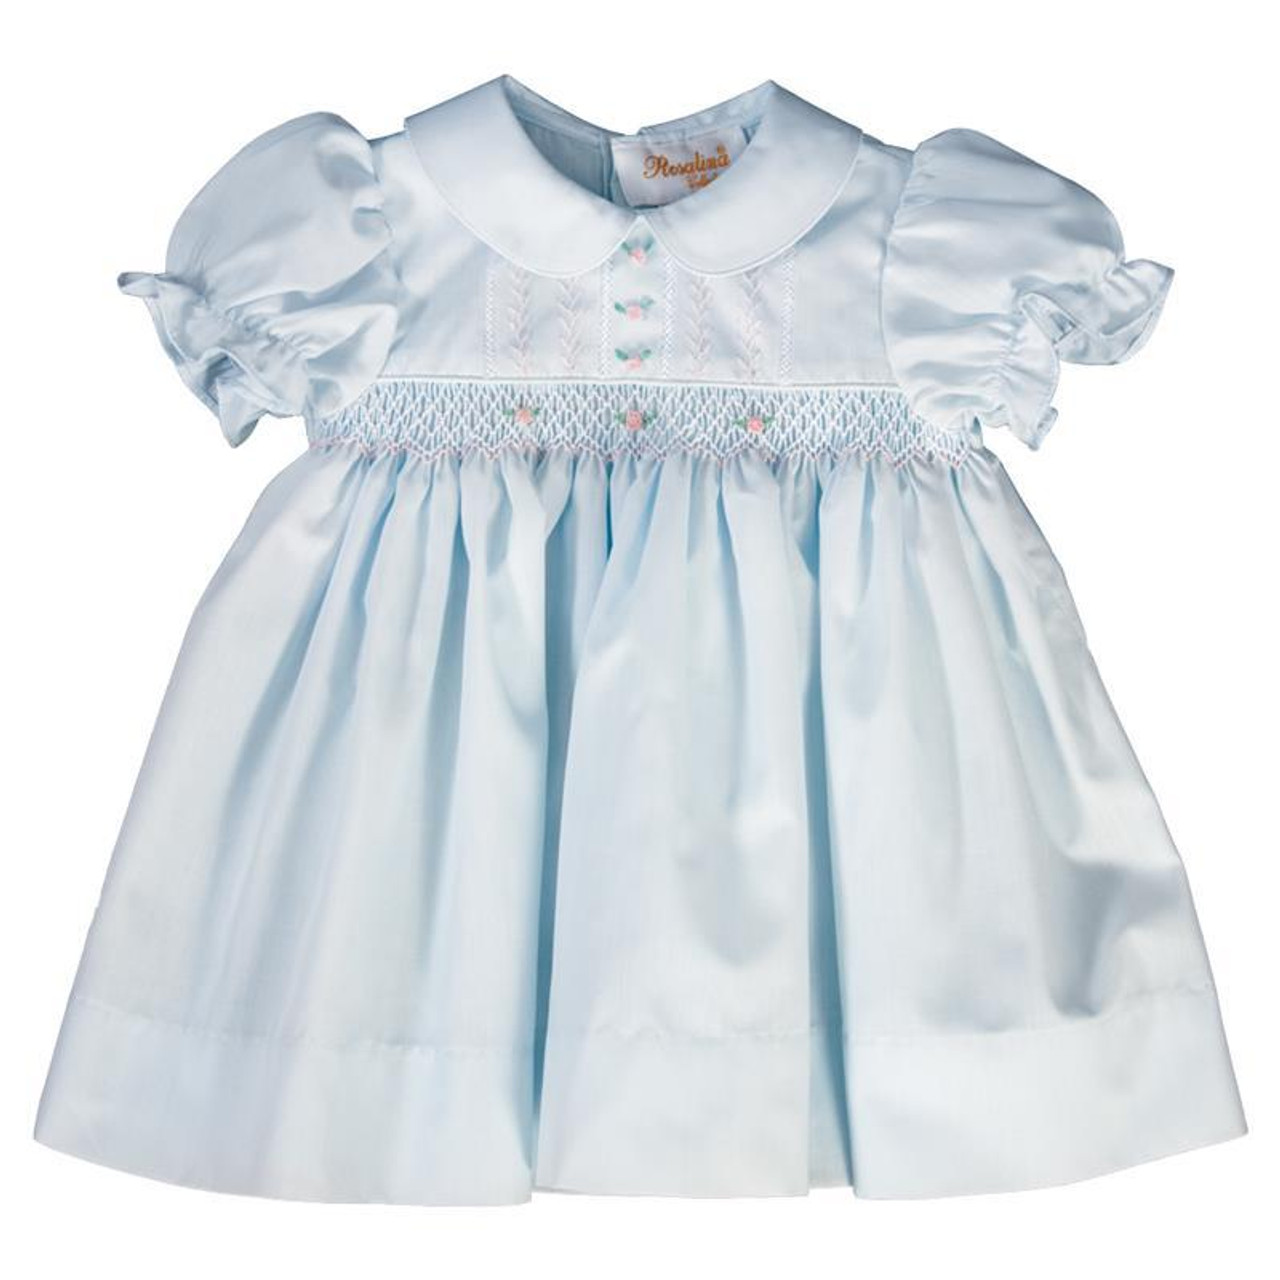 52bc3a690d39 Lillian Light Blue English Smocked and Feather Stitched Baby Dress ...